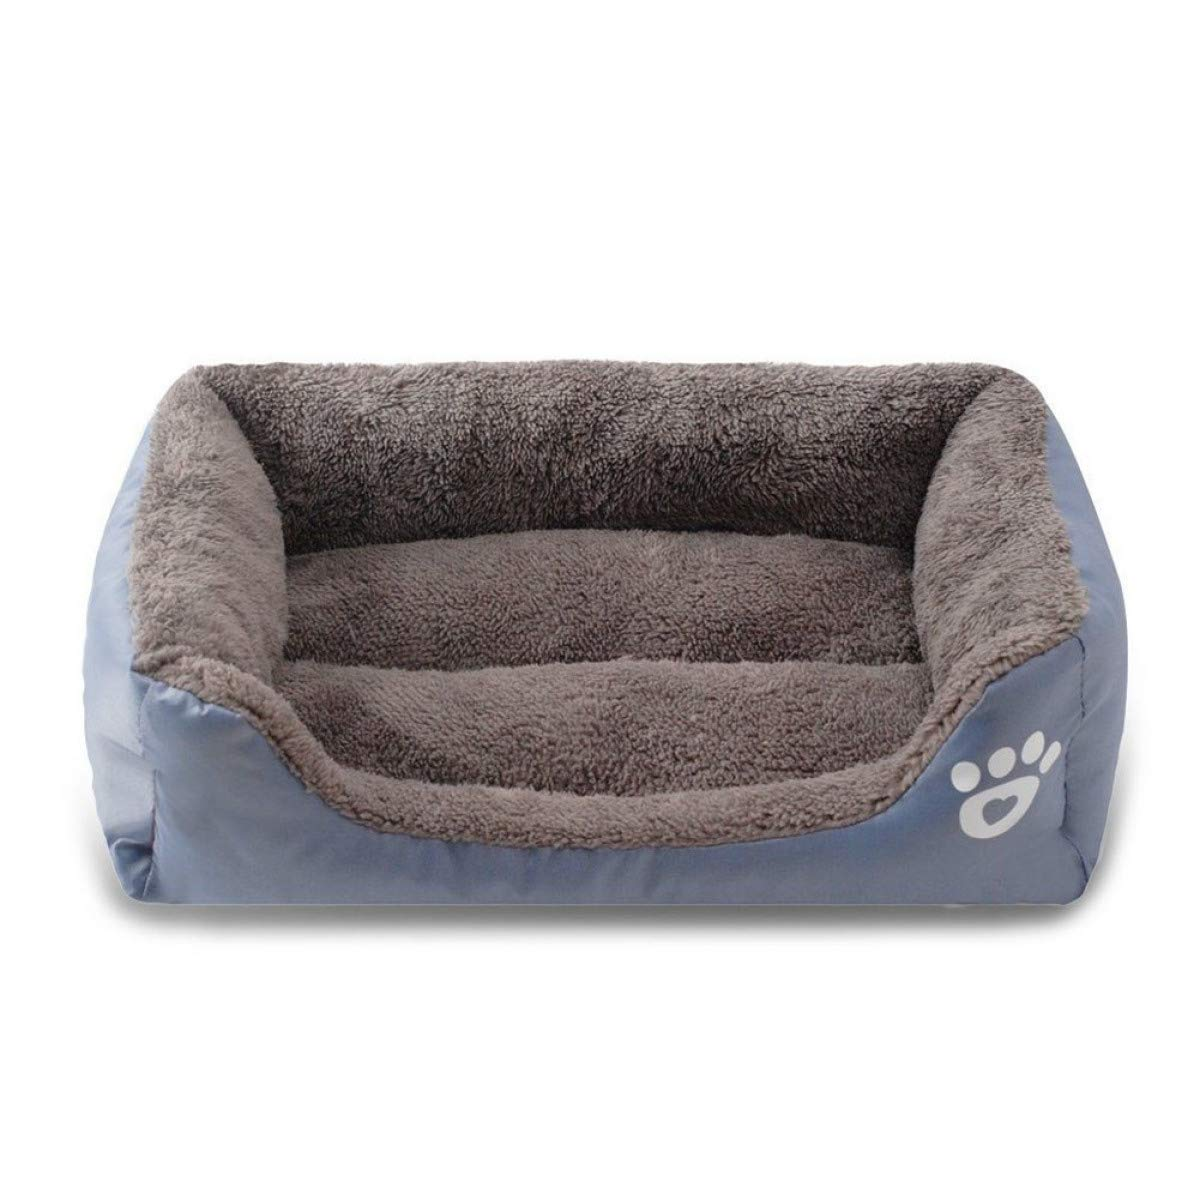 Amazon.com : WEEKEND SHOP Dog Bed cat Bed Cat Soft Warm Kennel Mat Blanket Autumn Winter Large Pet Dog Bed Cushion House Washable : Pet Supplies